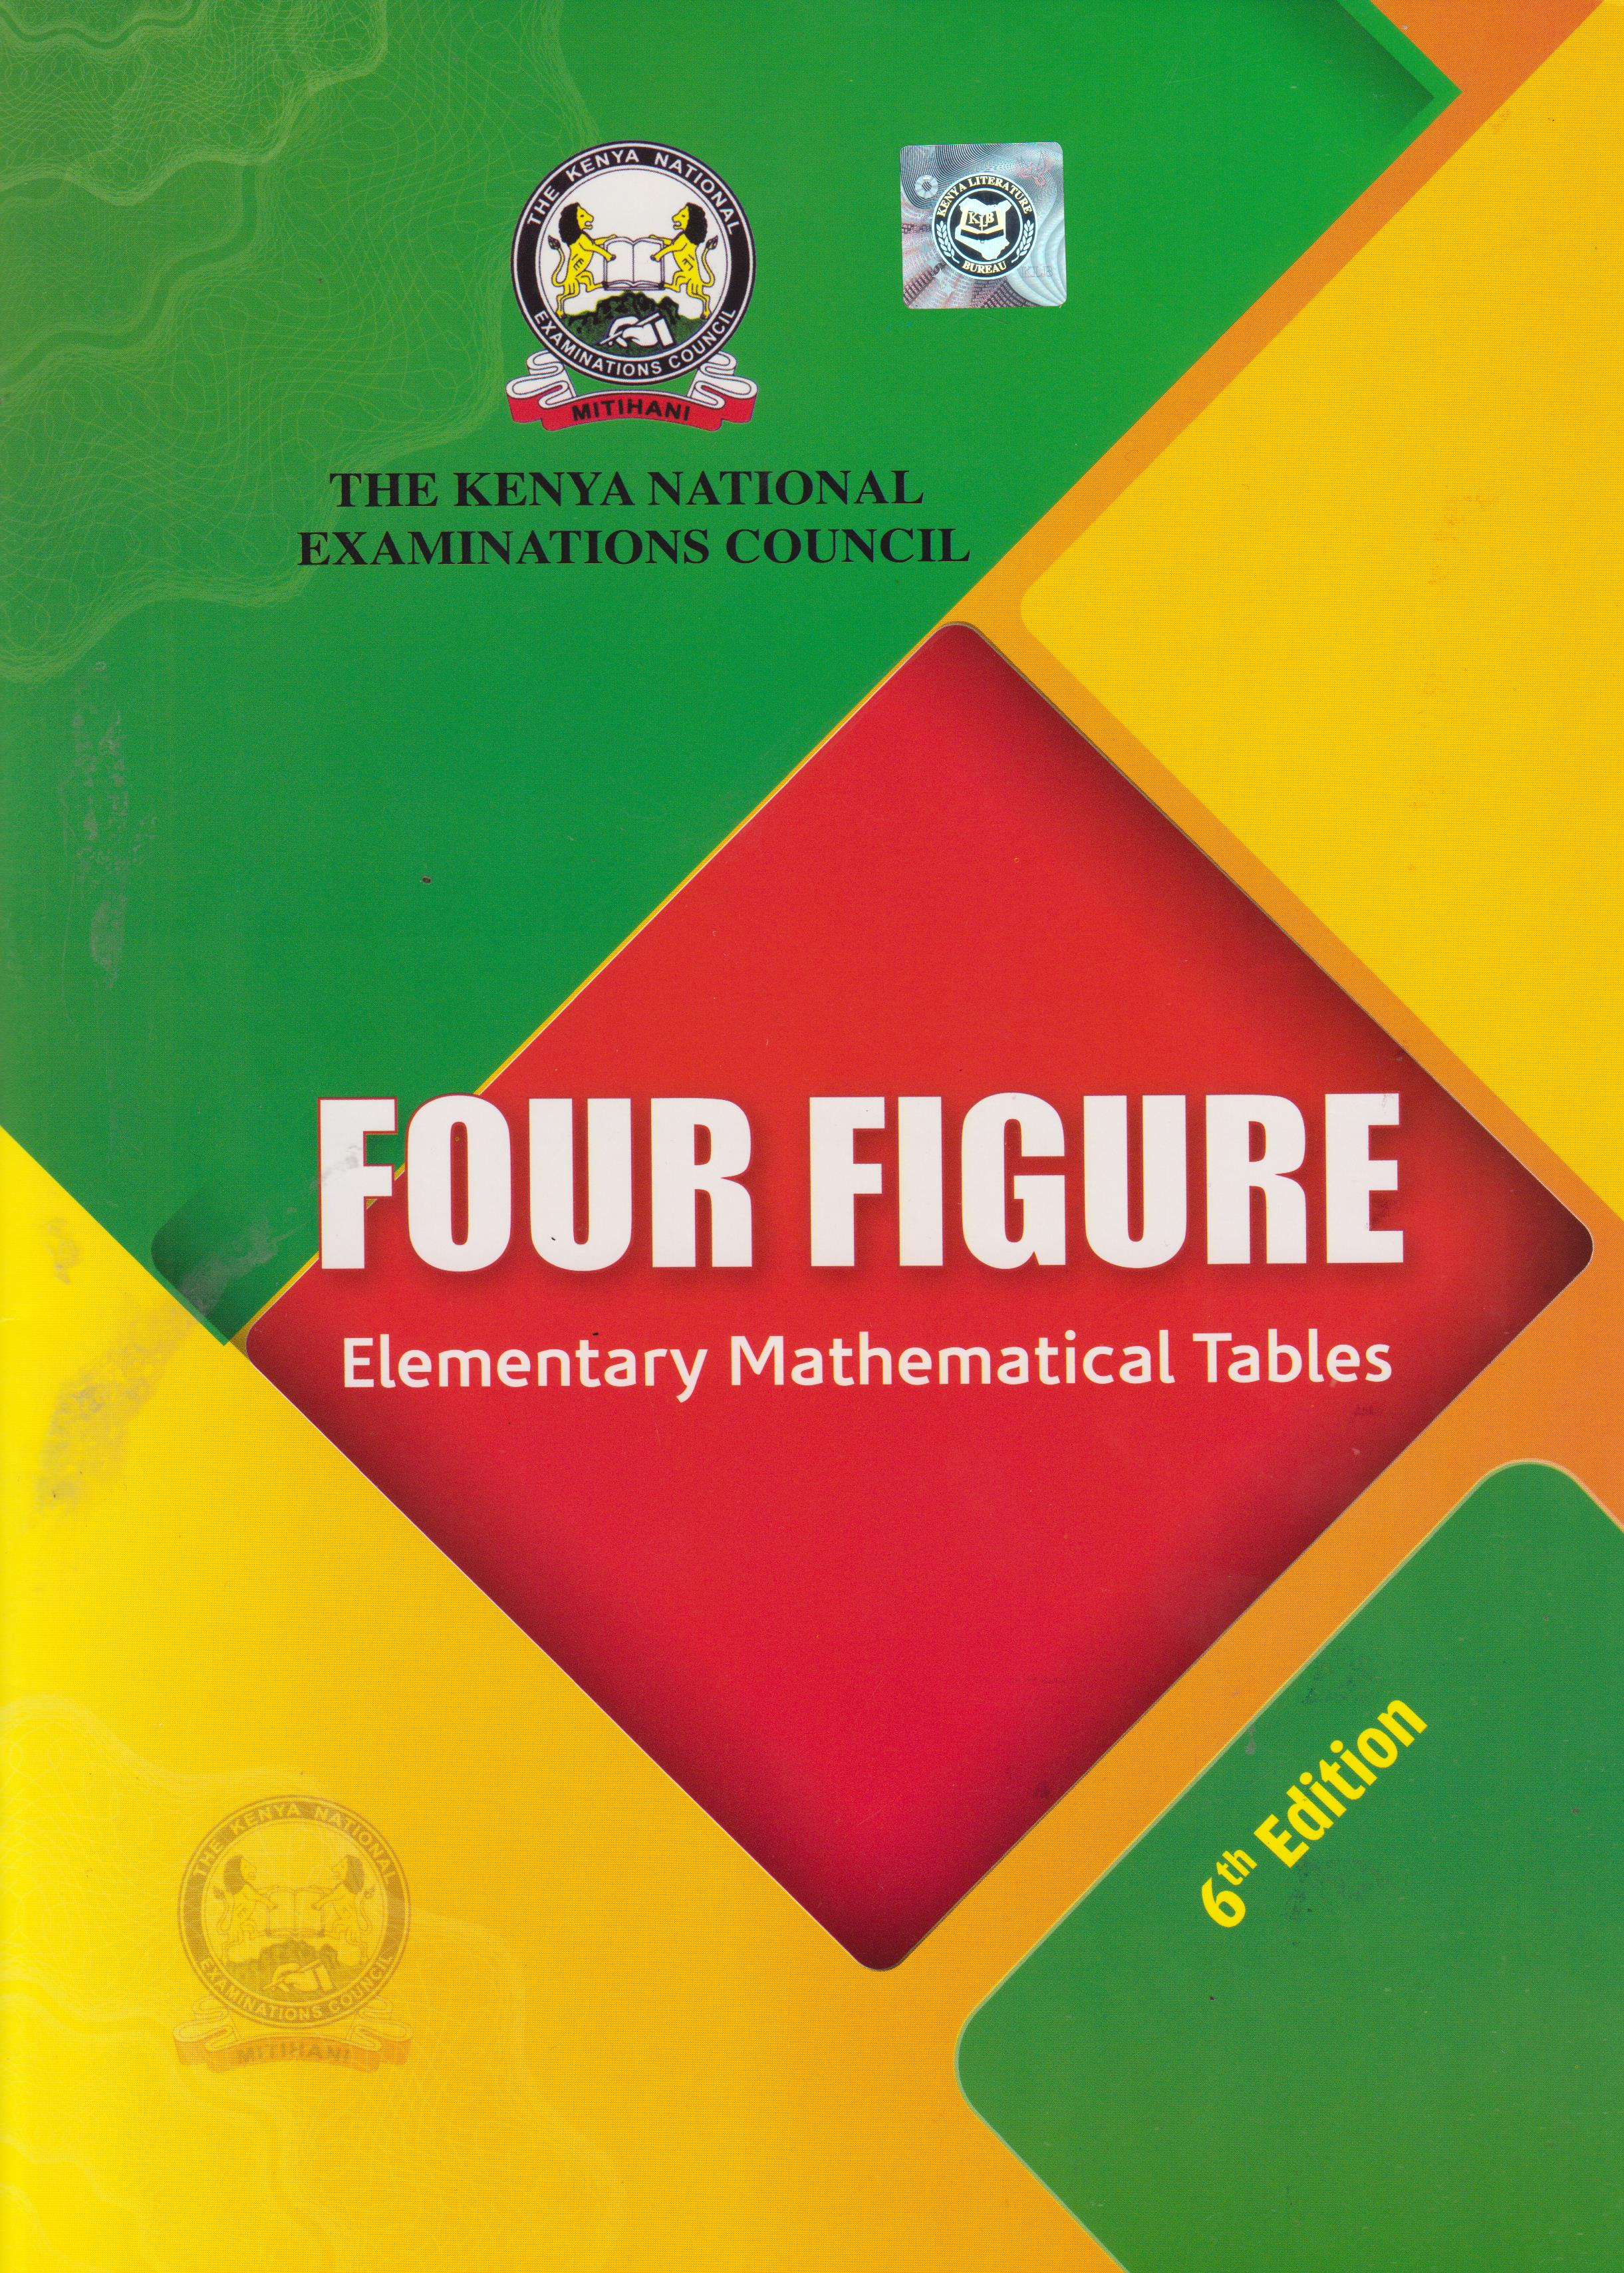 KNEC Four Figure Elementary Mathematical tables 6th edition